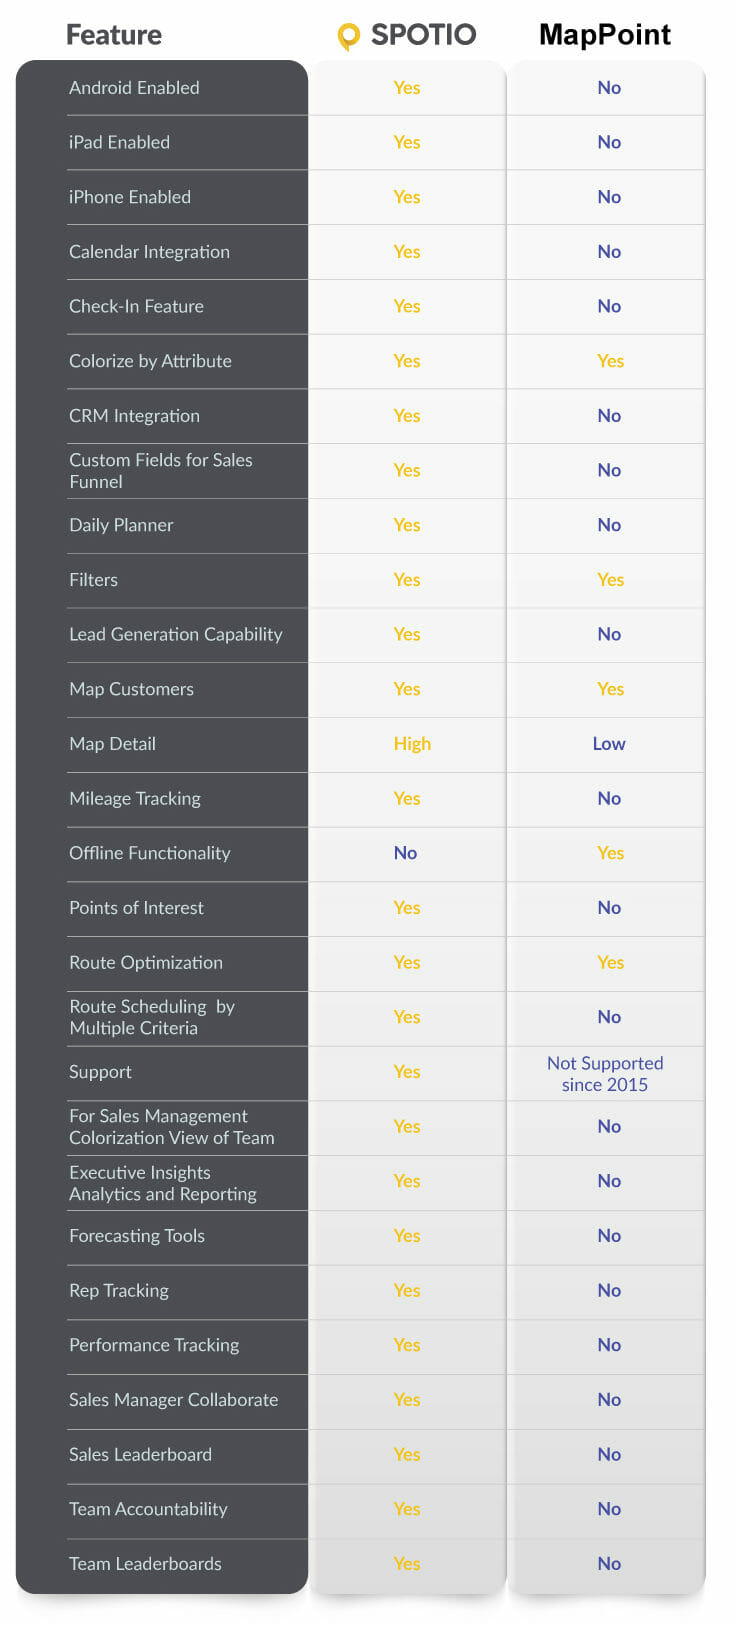 Side by side features chart comparing spotio with mappoint, proving why spotio is a great mappoint alternative